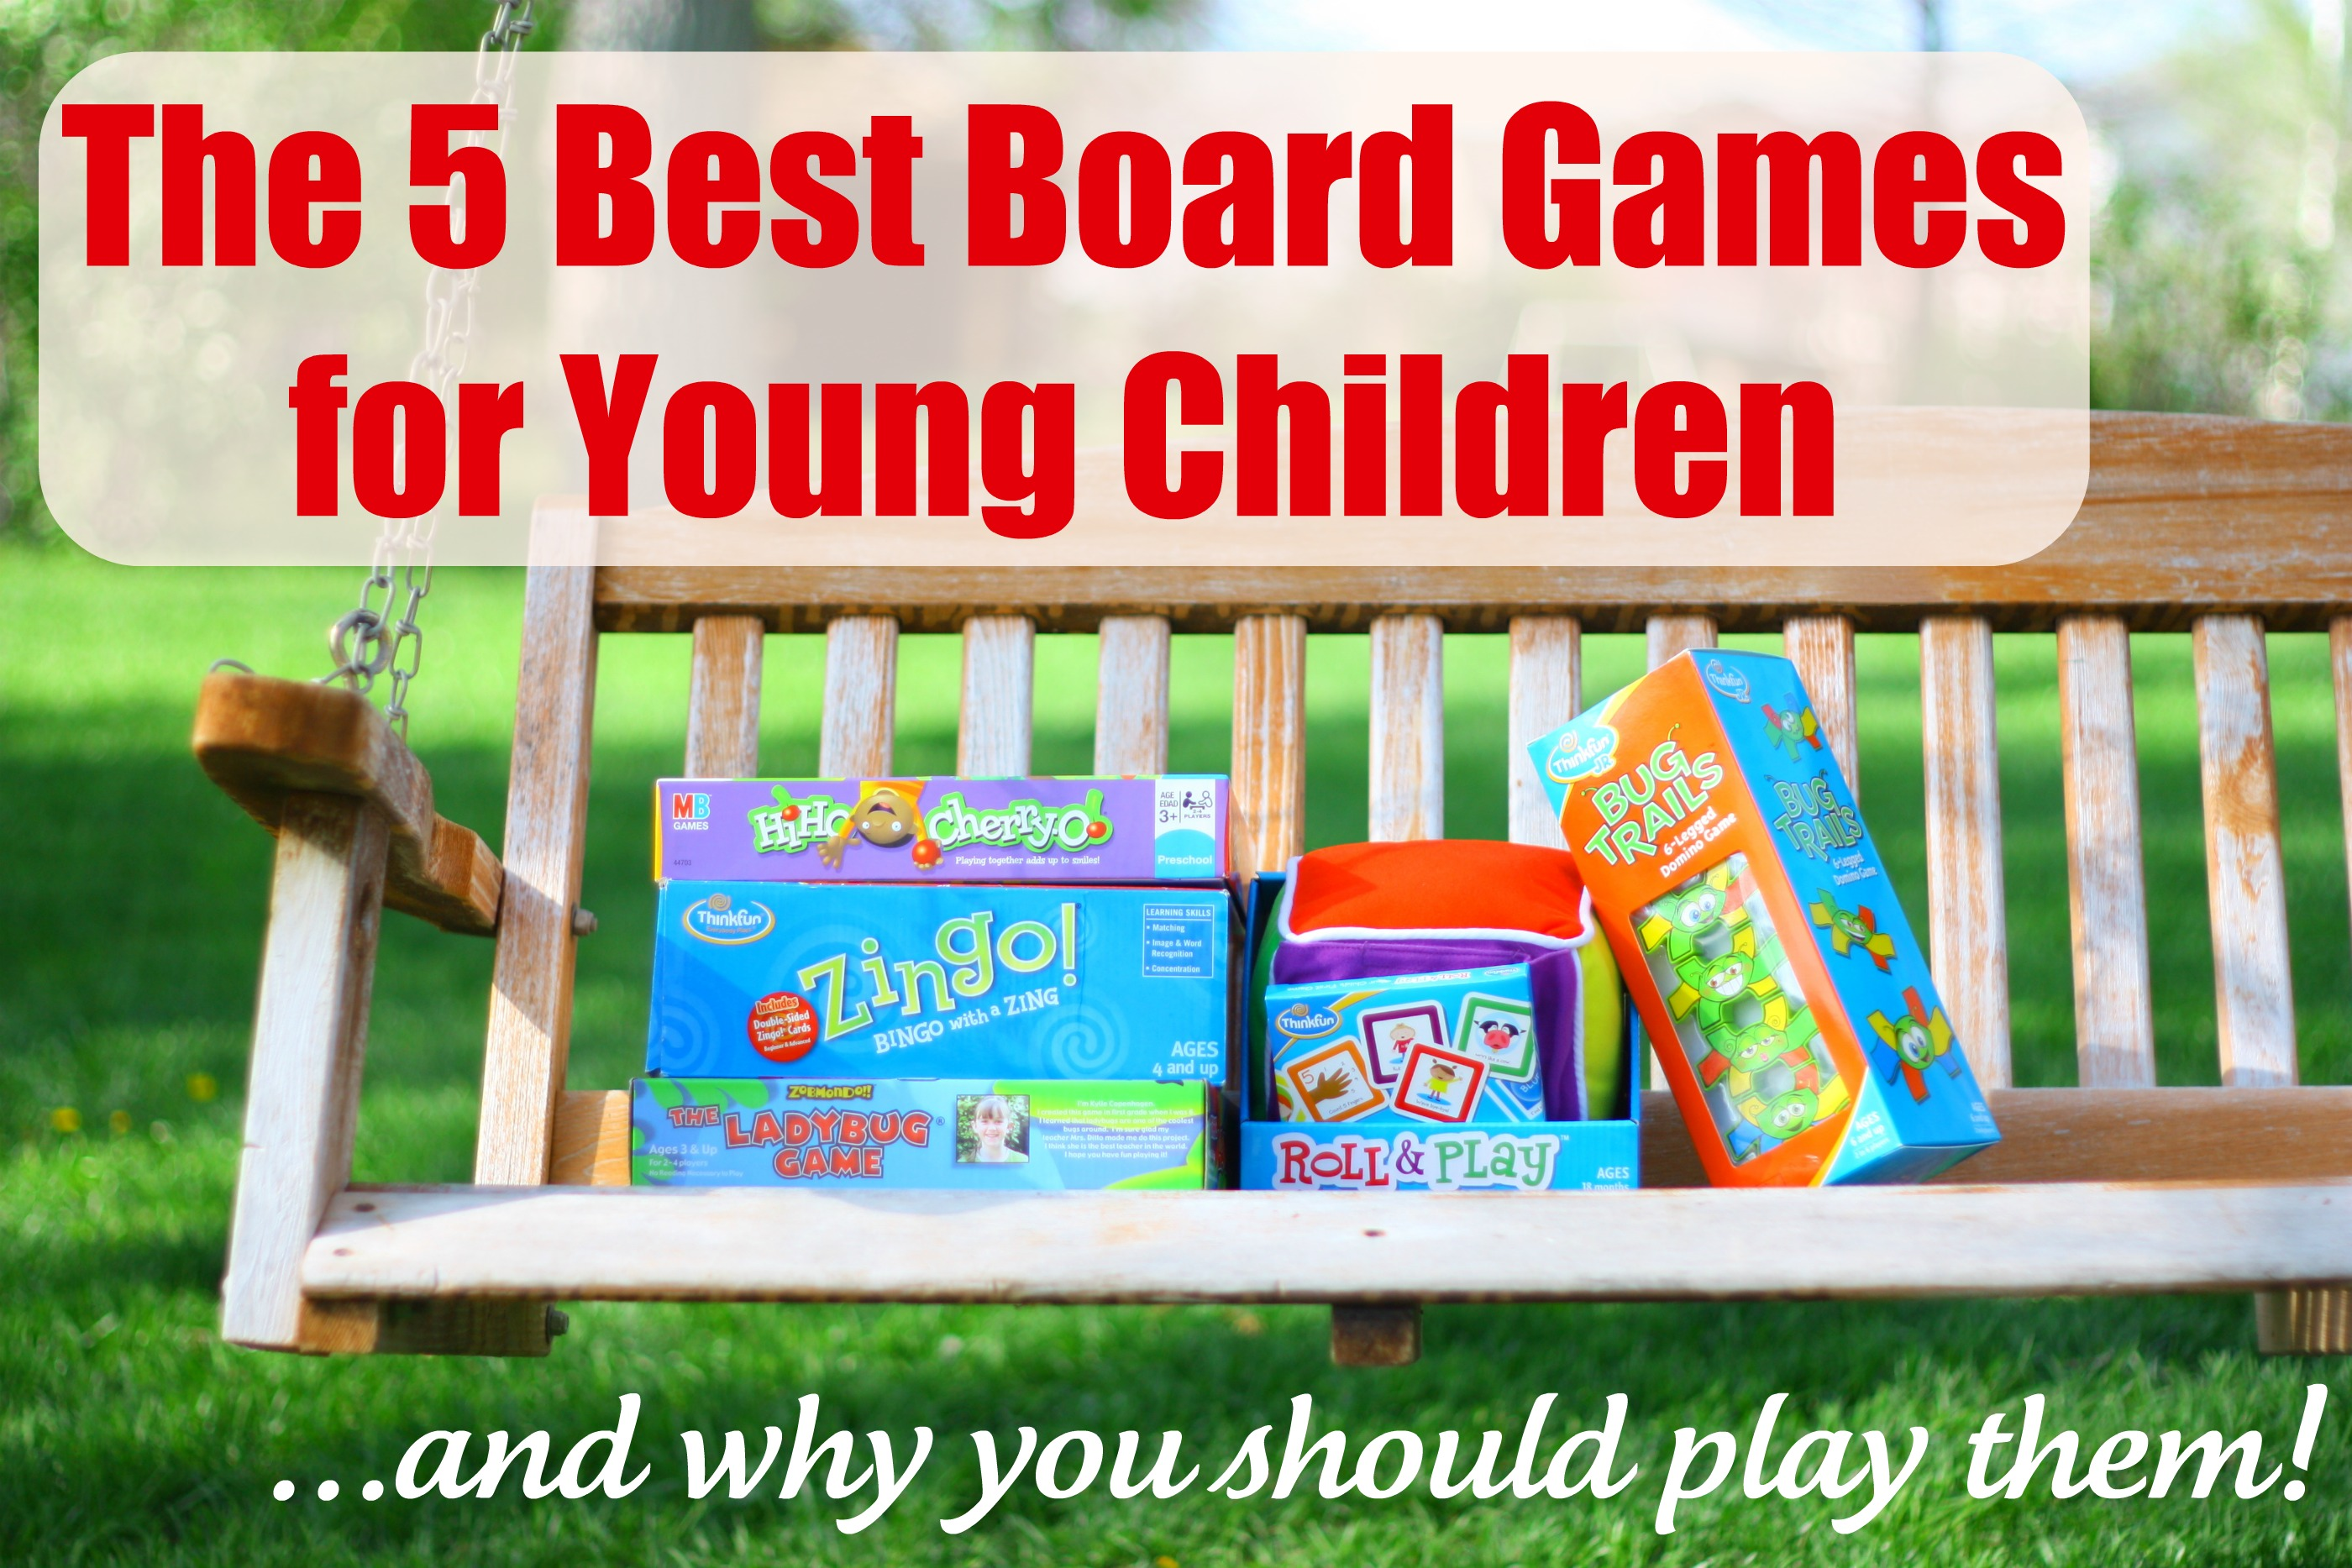 best 2-3 player board games